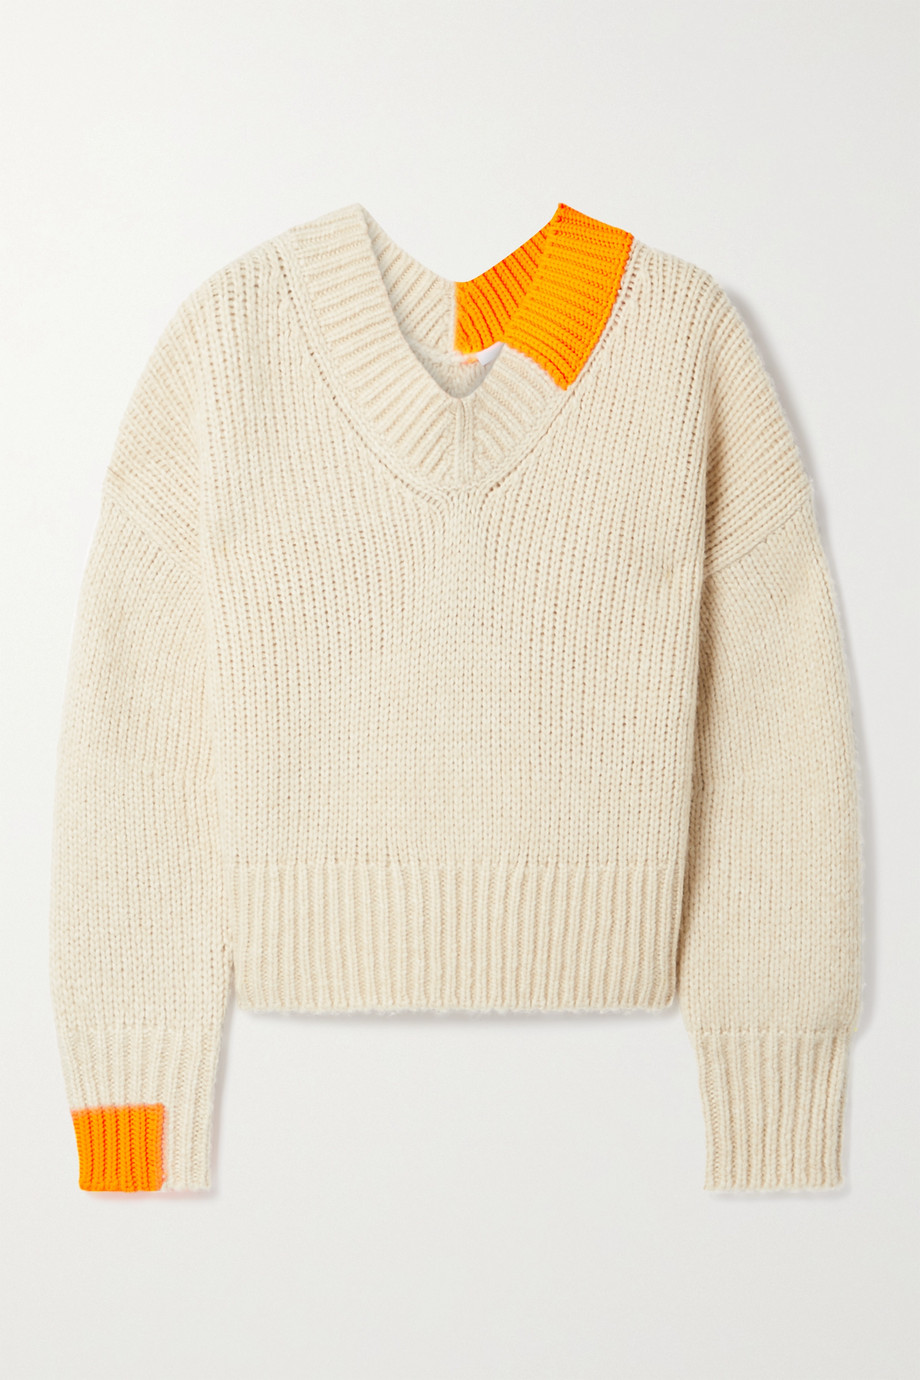 Helmut Lang Two-tone knitted sweater